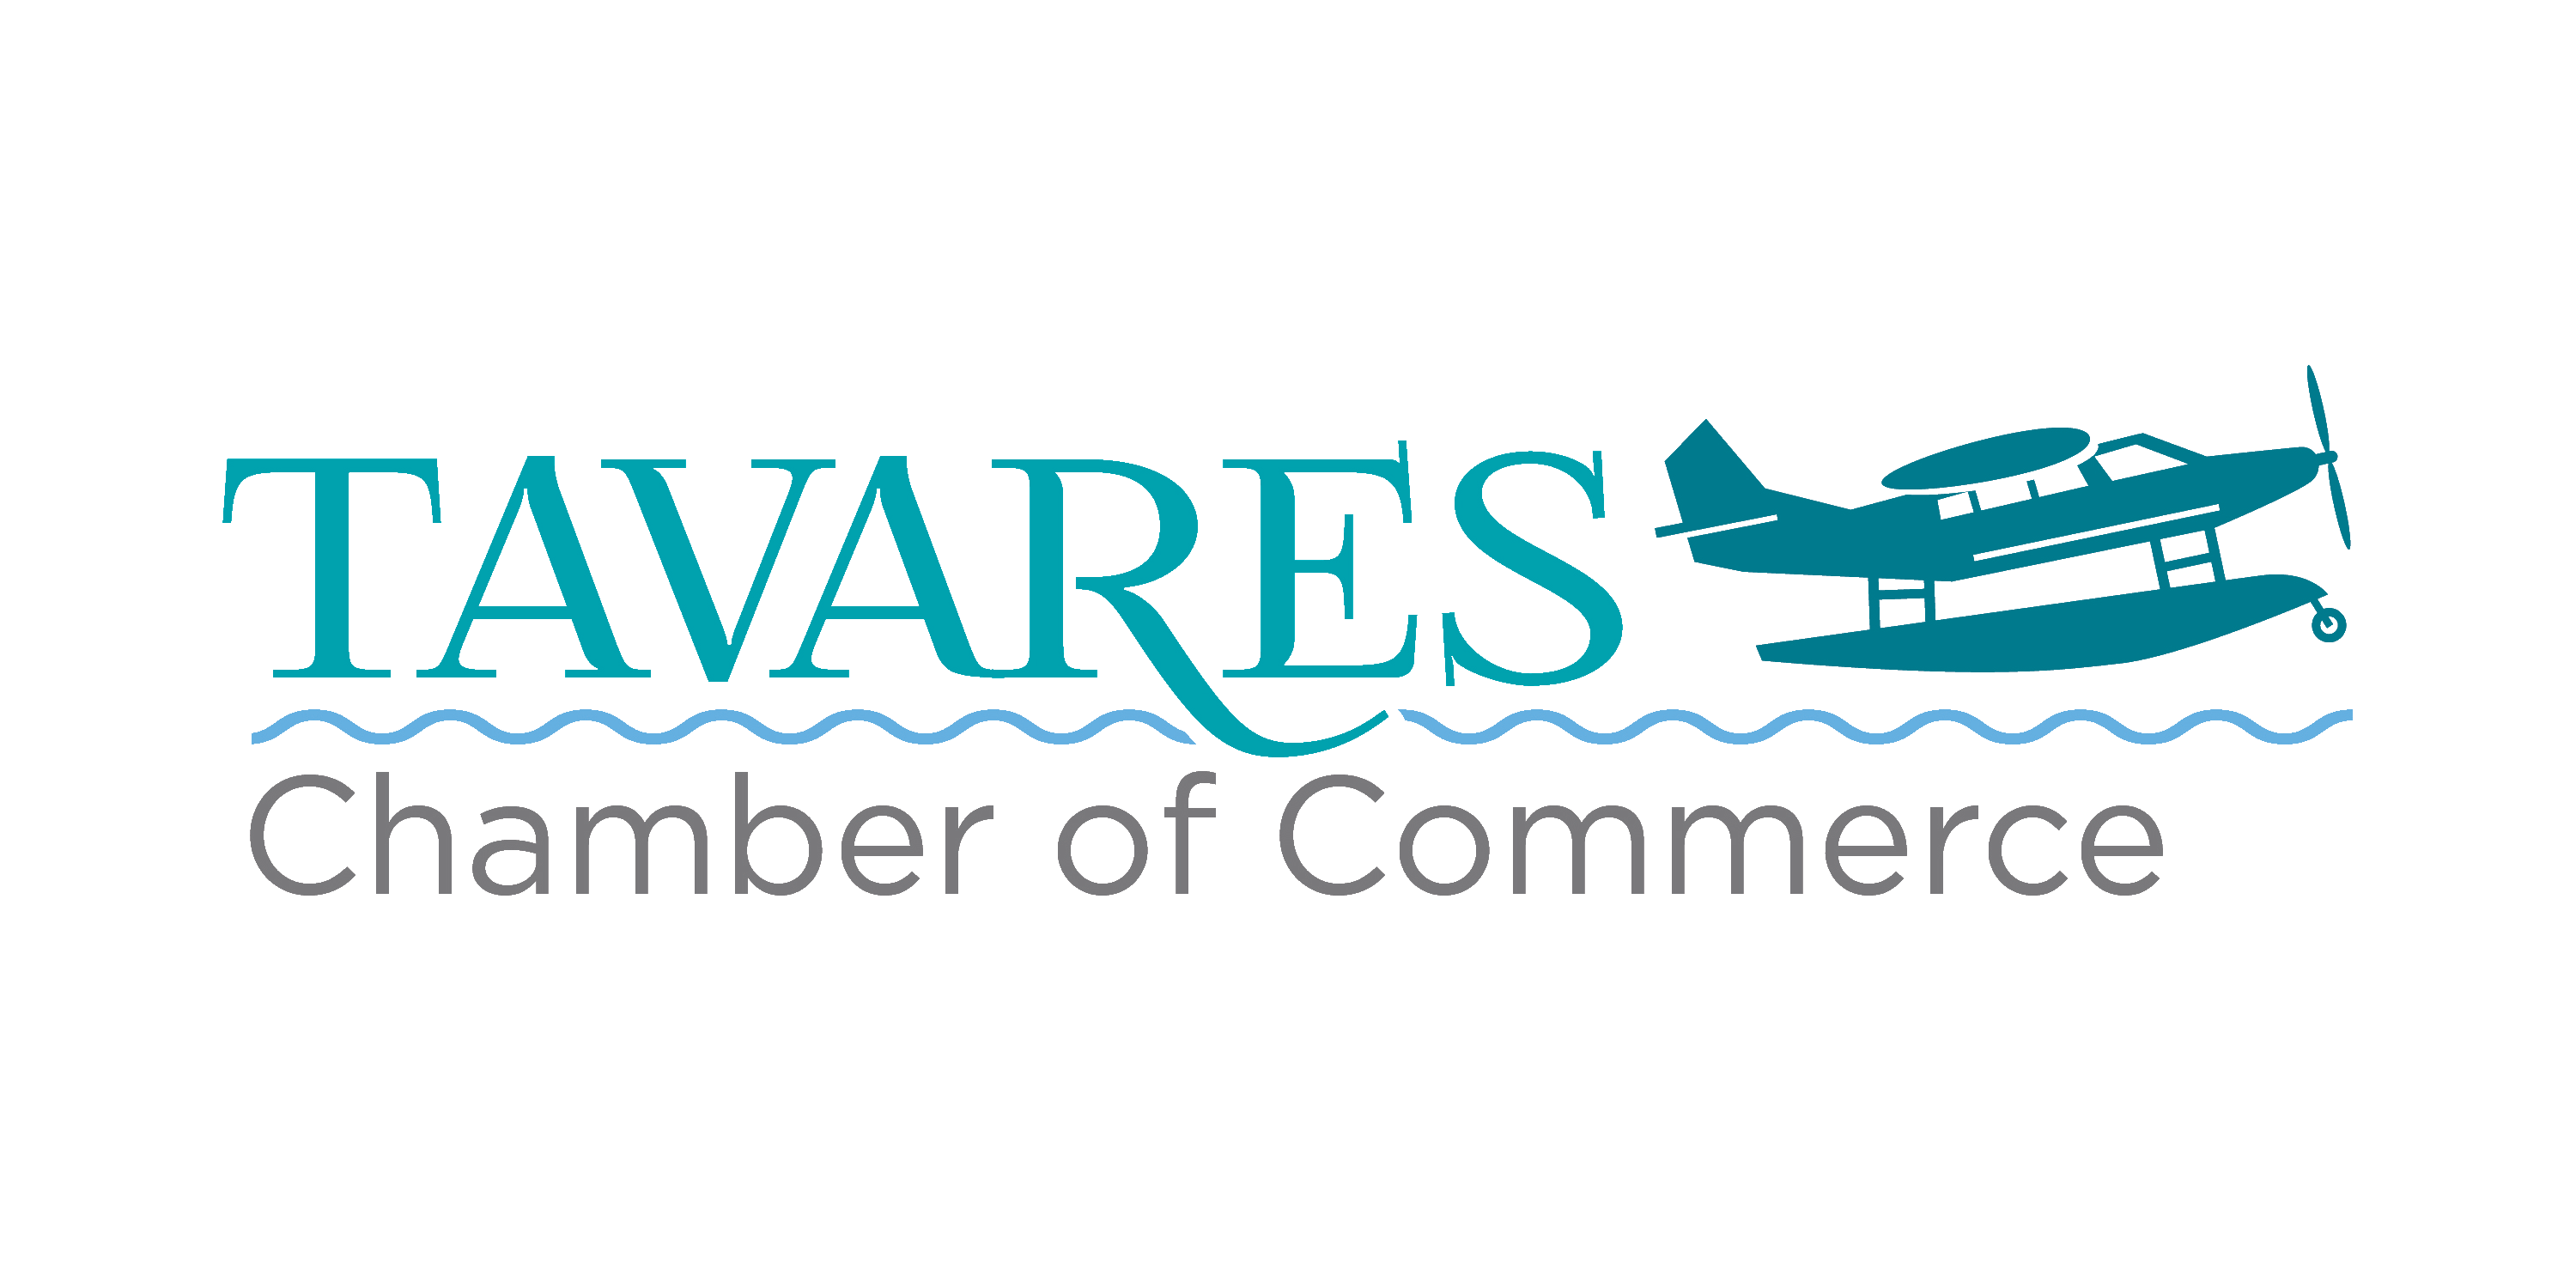 Tavares Chamber of Commerce